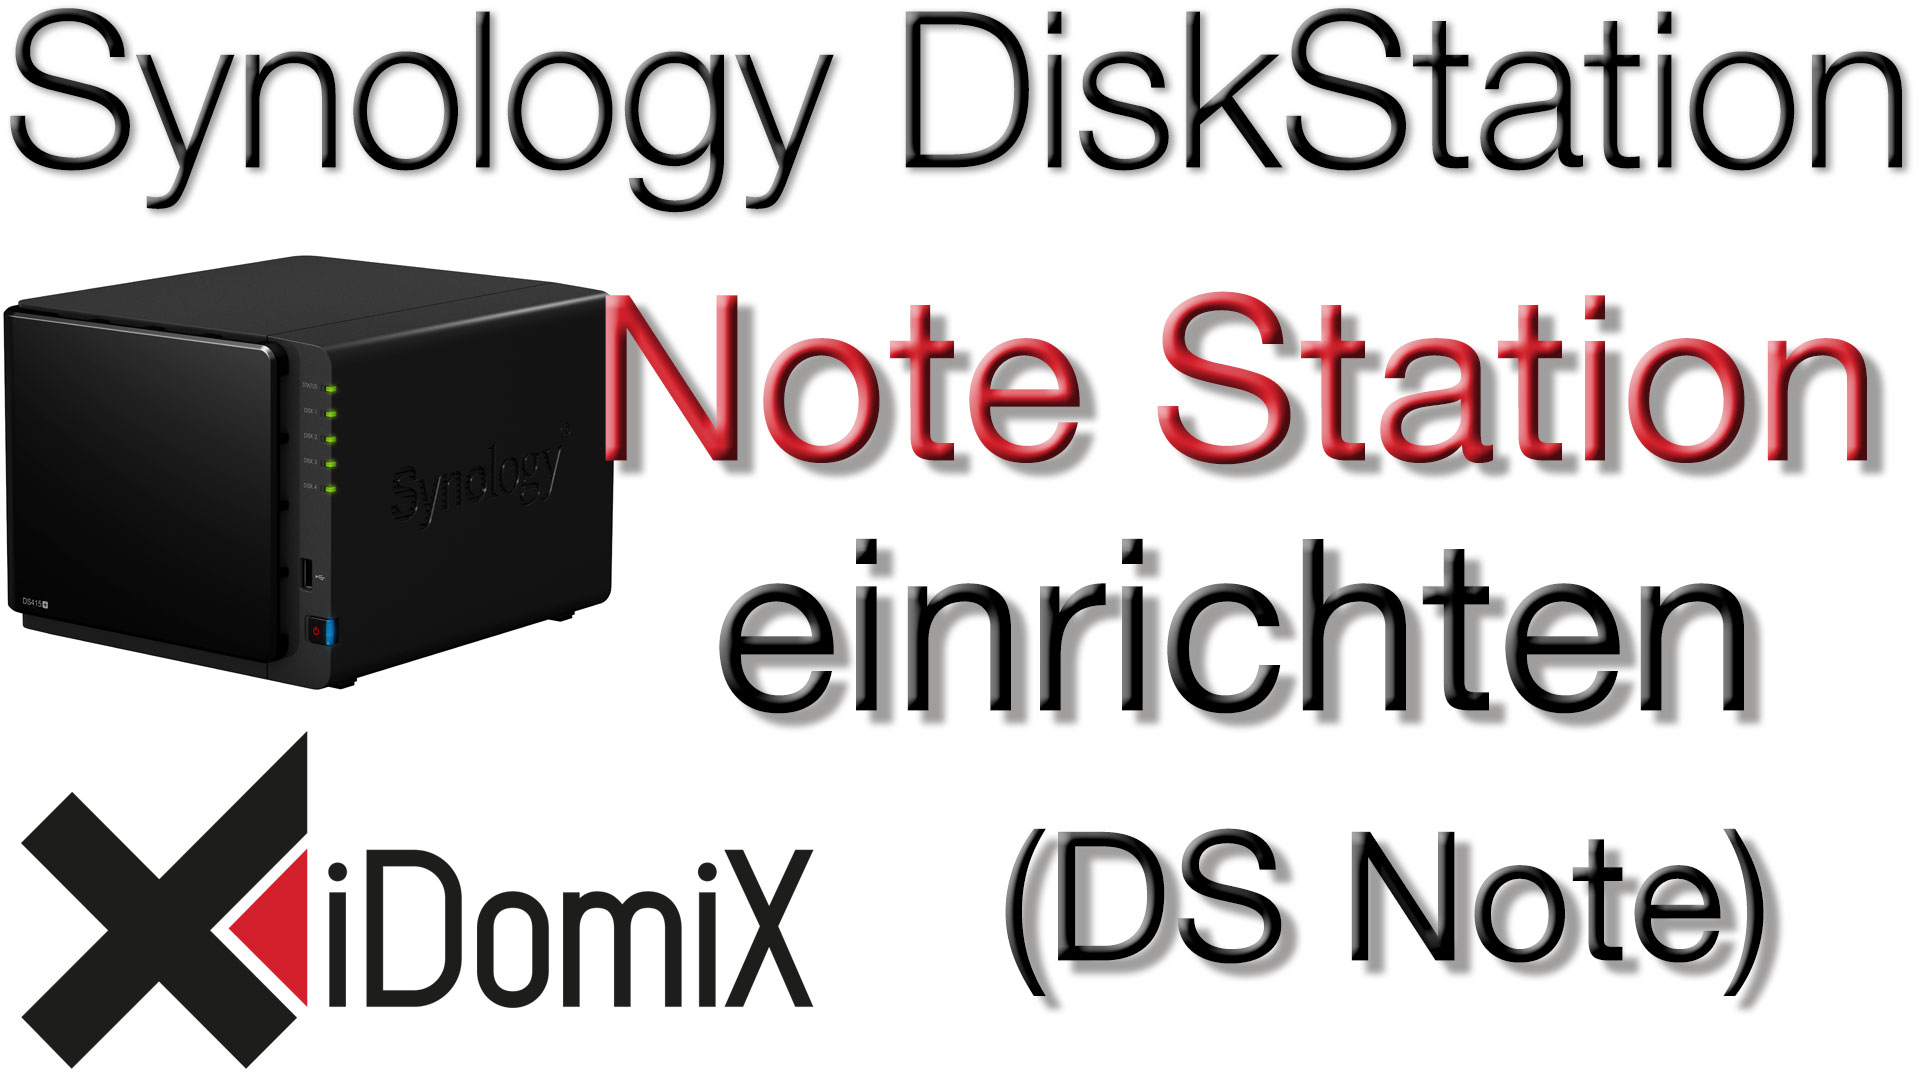 Synology DiskStation Note Station DS Note einrichten